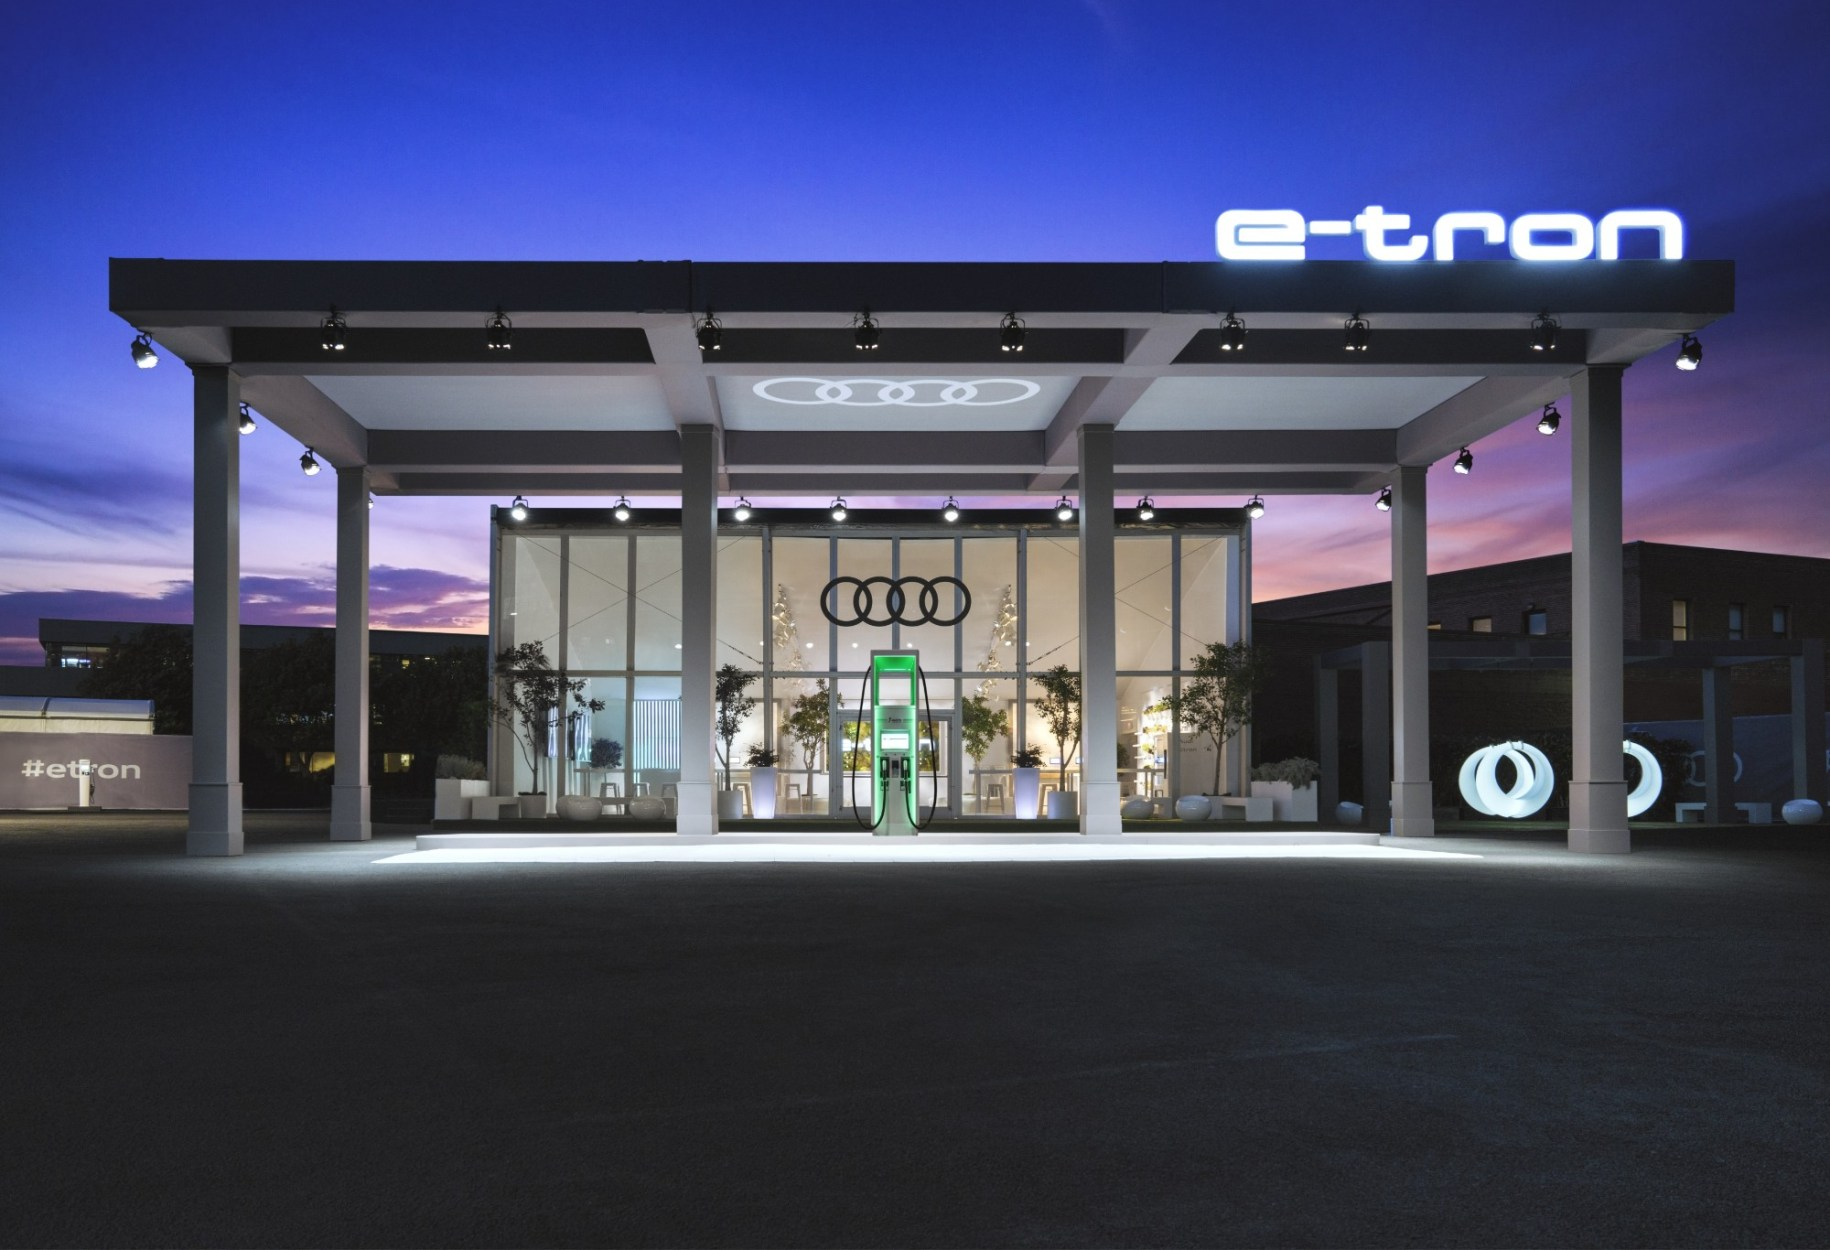 Audi Envisions A Charging Station For The Electric Era, Celebrating The New All-Electric Audi e-tron SUV In San Francisco